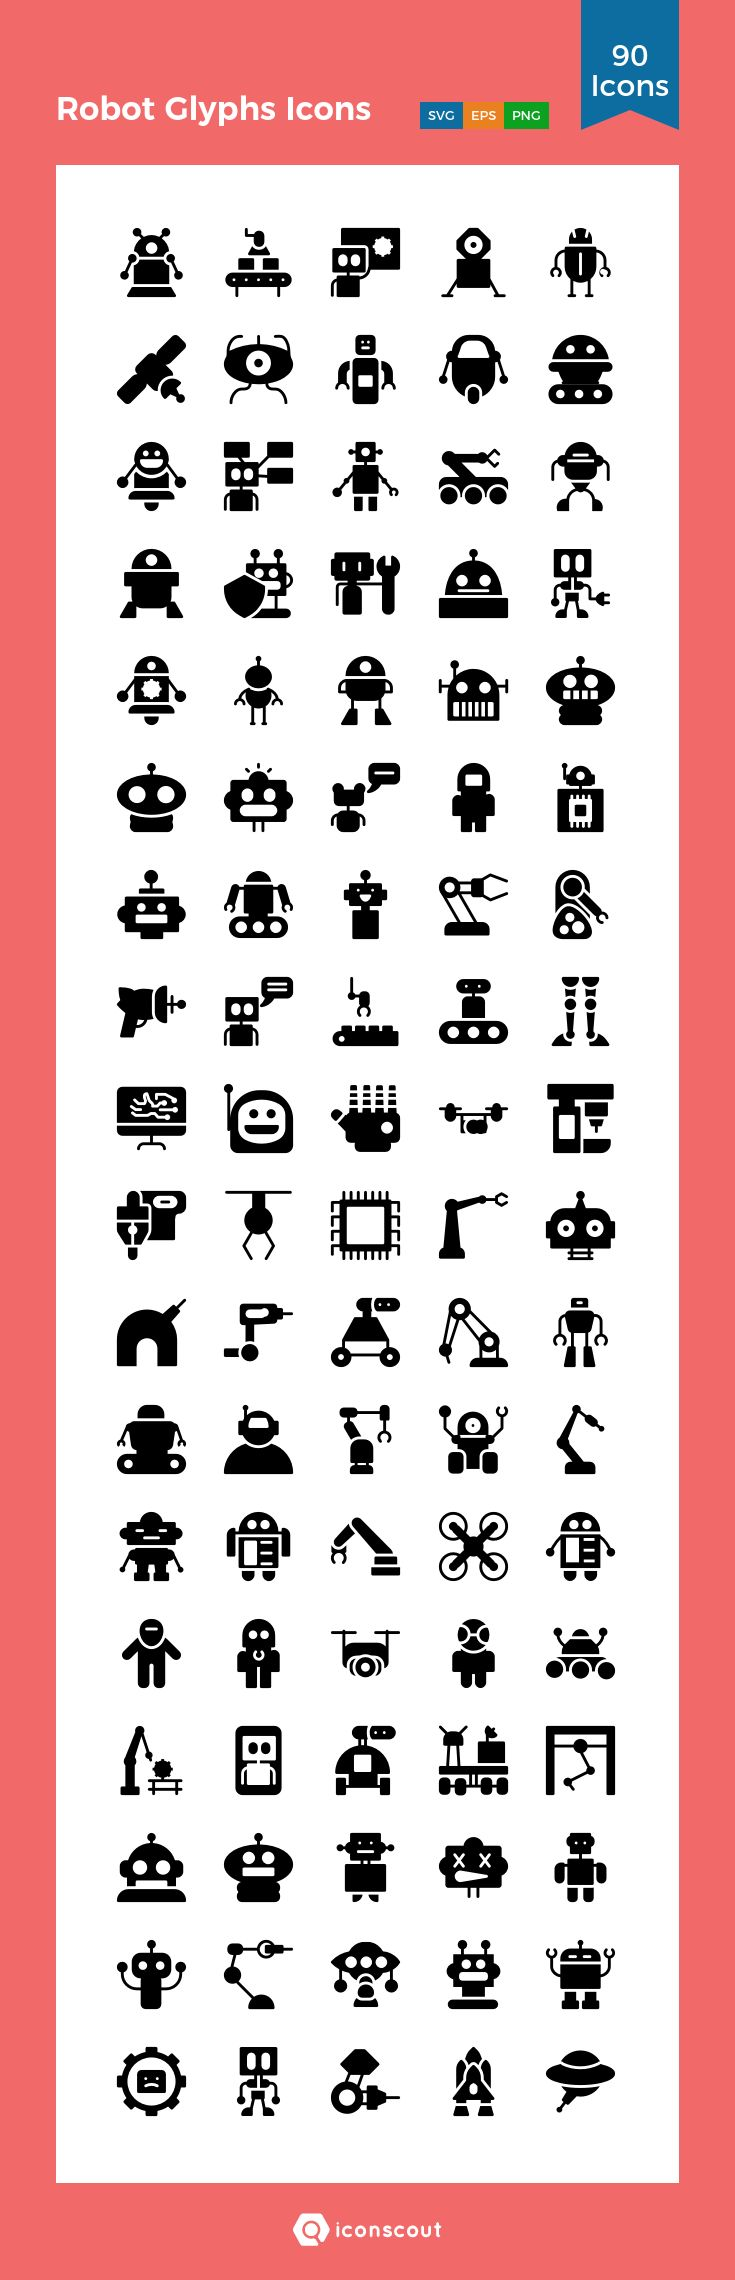 Robot Glyphs Icons  Icon Pack - 90 Solid Icons